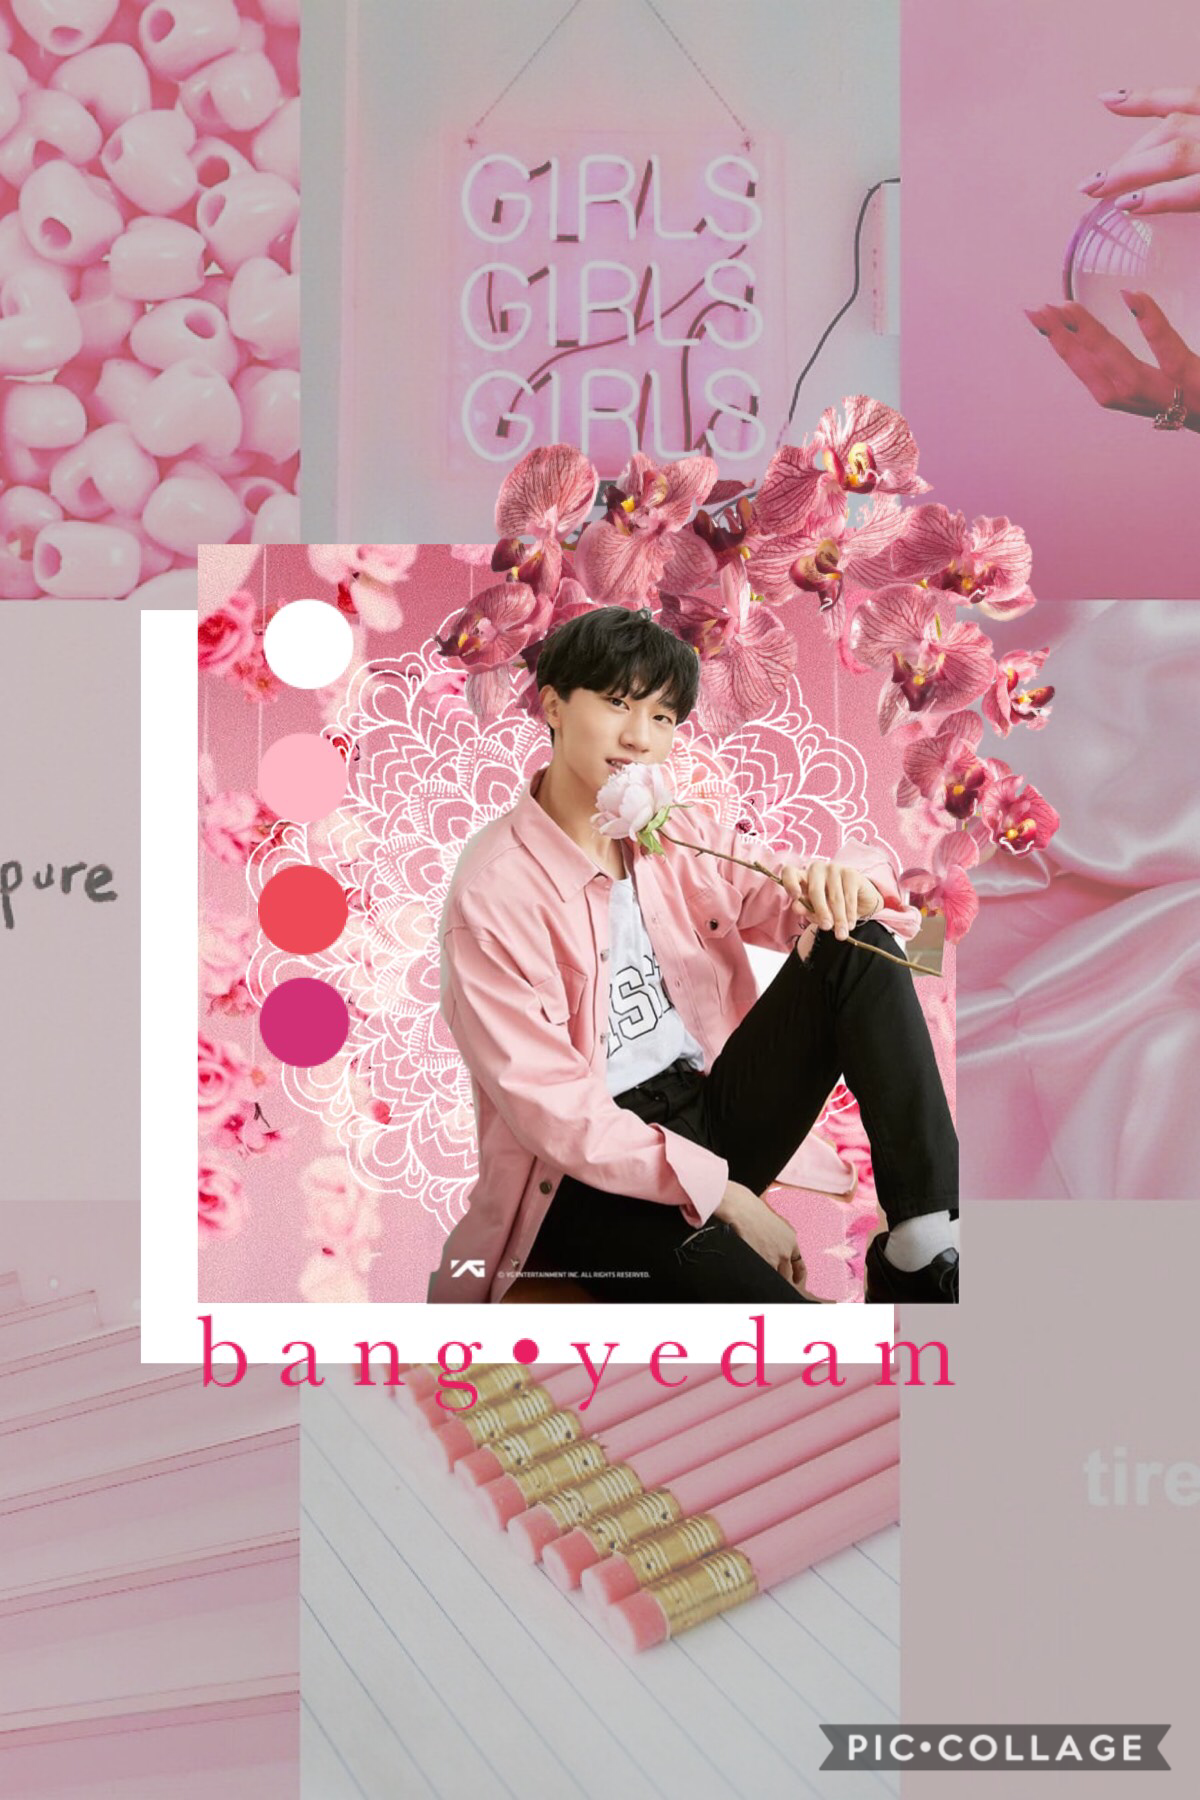 ☆*:.。. TAP .。.:*☆ This is a Yedam edit for the lovely @Whoop_Whoop127! I don't really know Yedam that well but I tried my best! (о´∀`о)